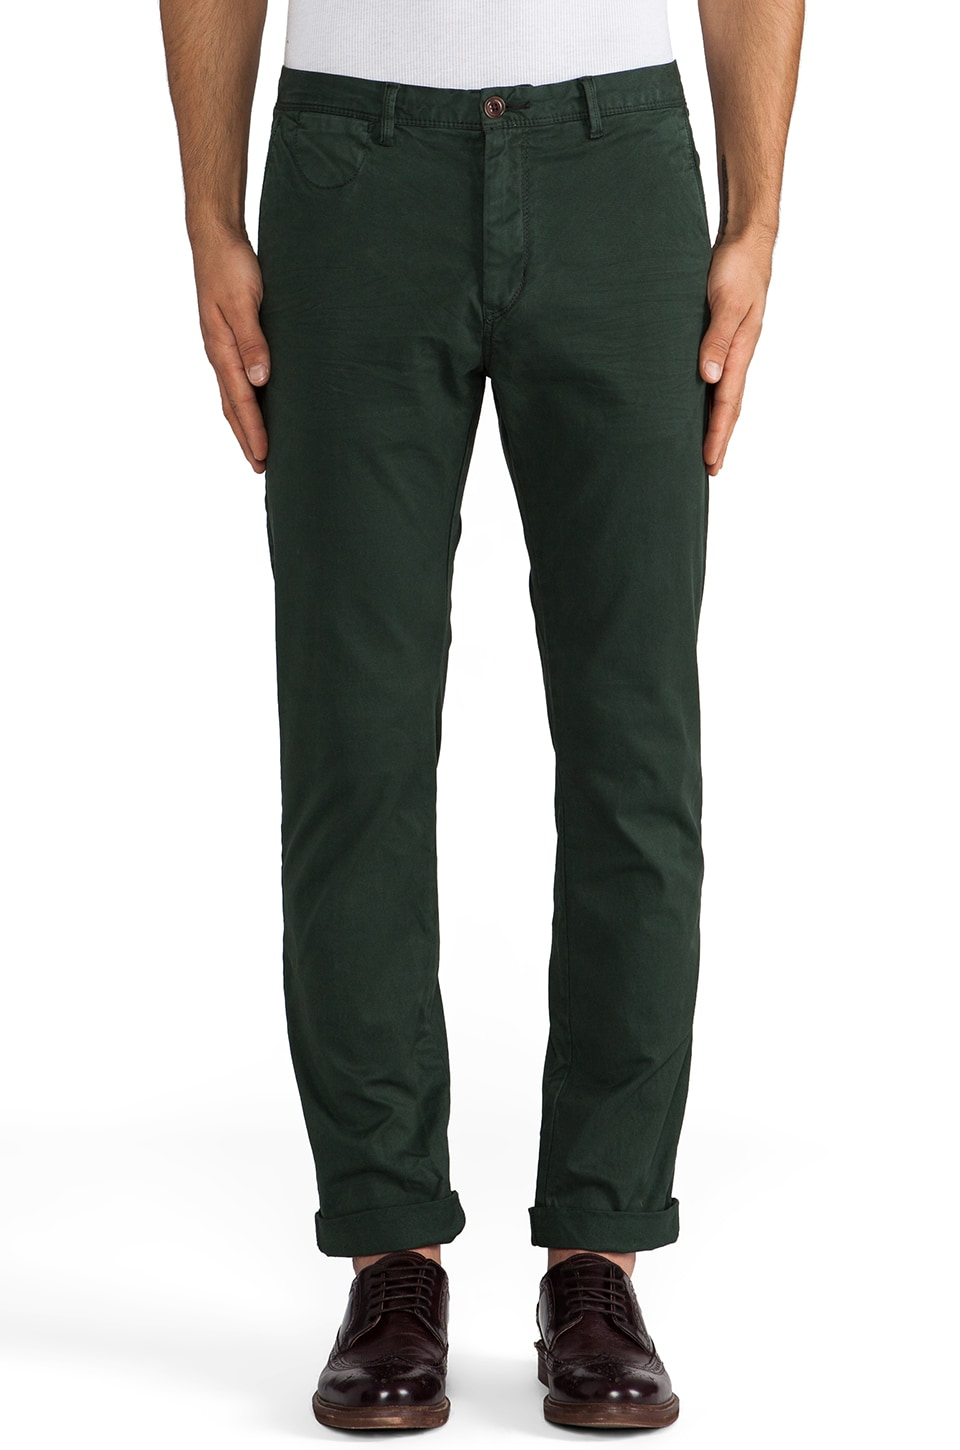 Scotch & Soda Slim Fit Chino in Olive